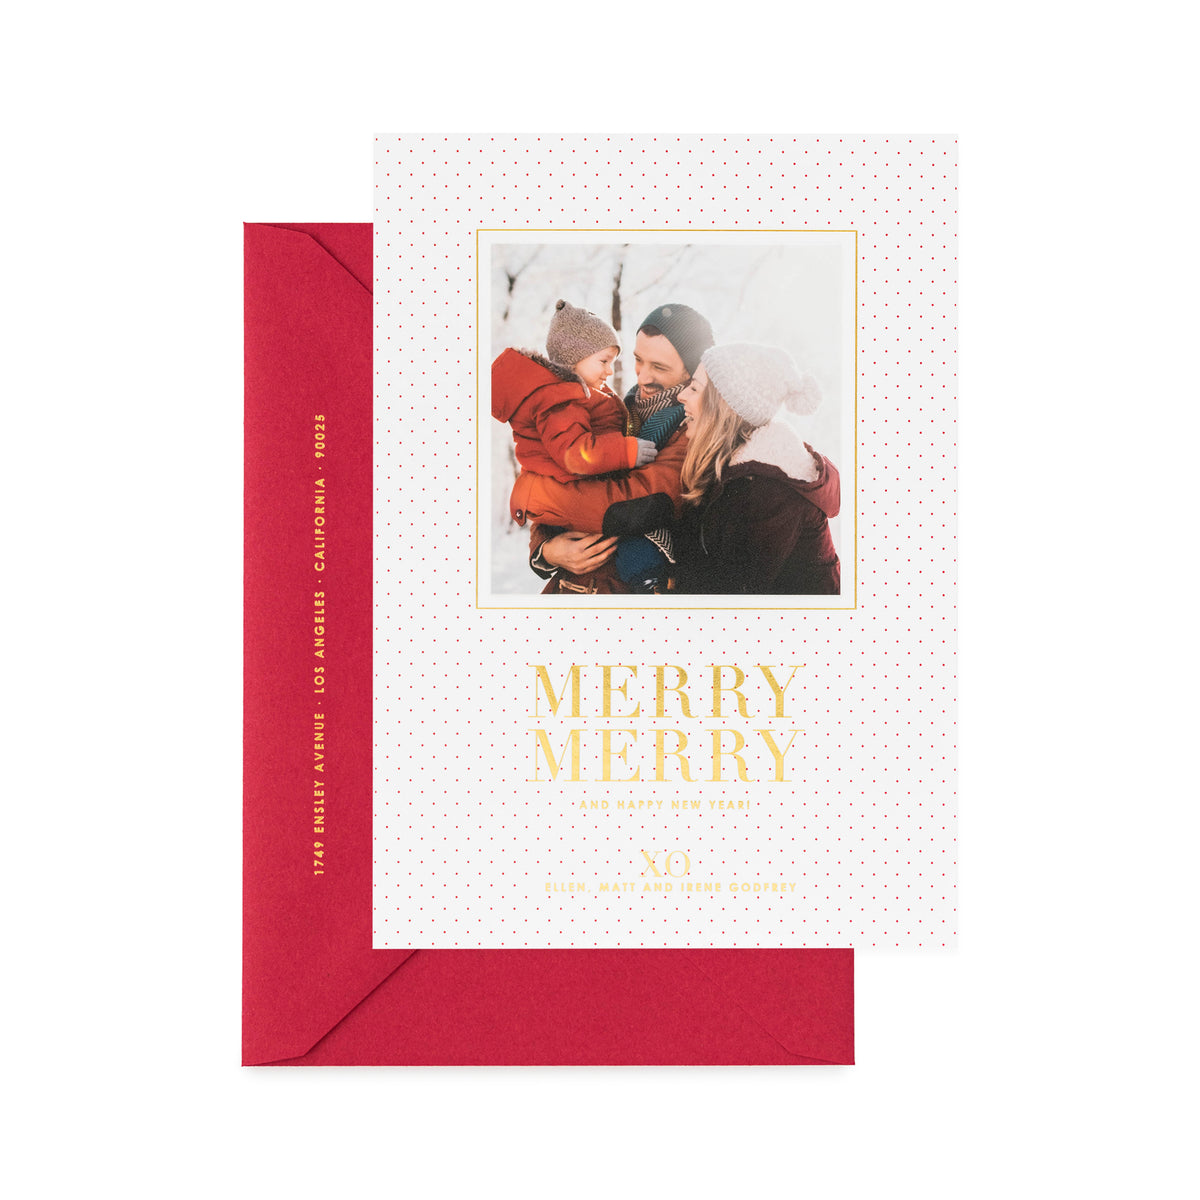 Red dot holiday photo card with Merry Merry and Happy New Year